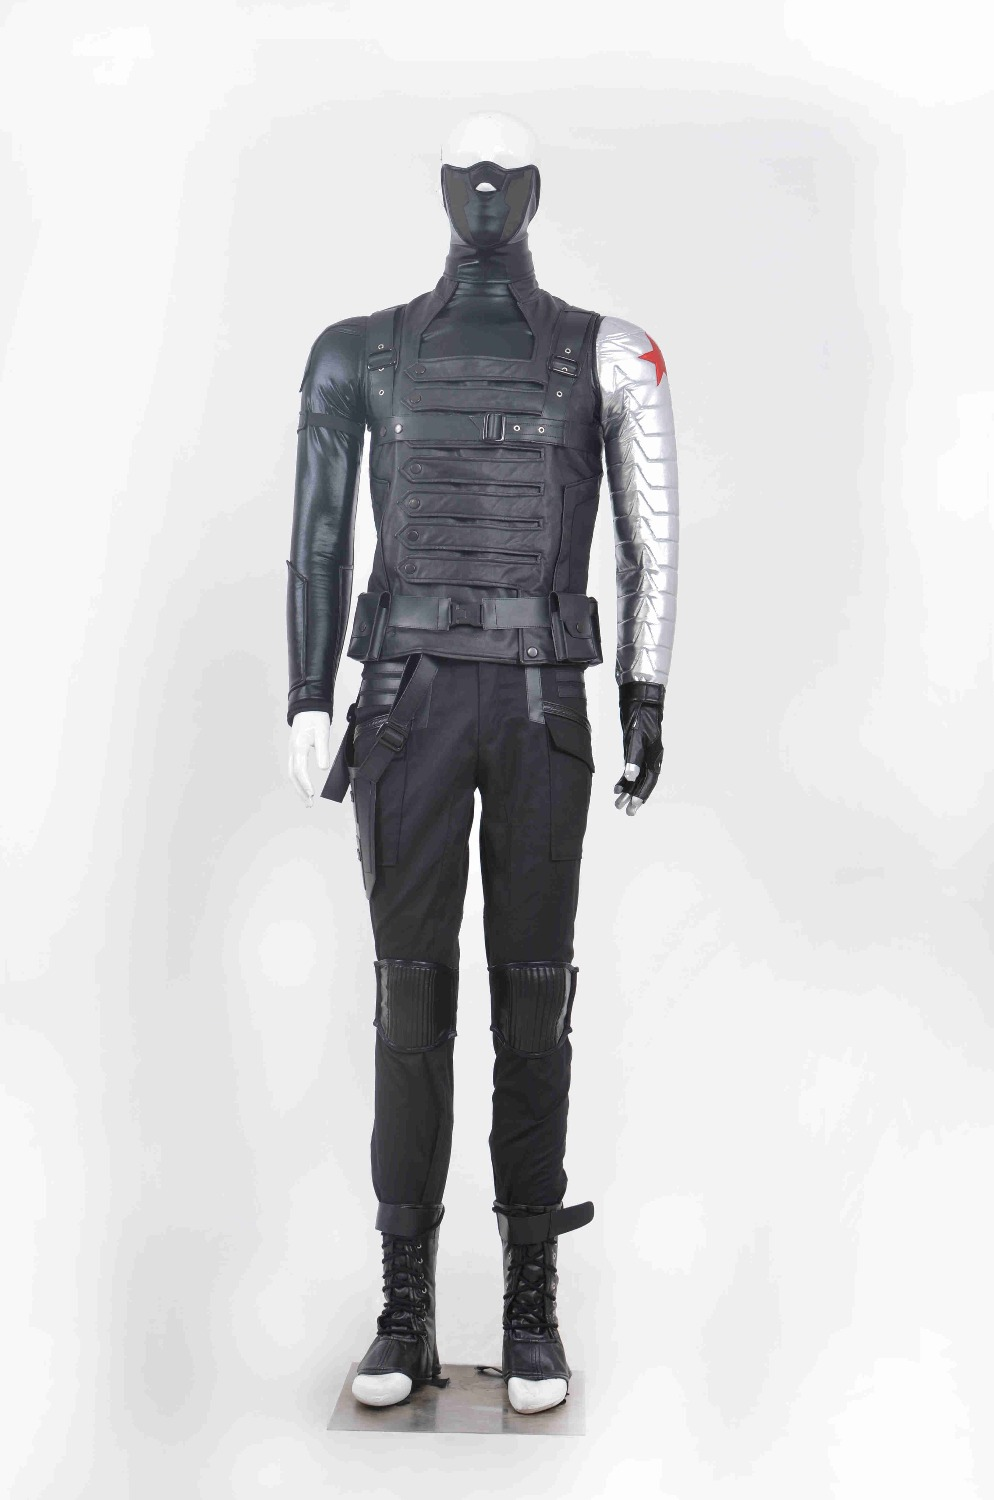 High Quality Captain America Costume The Winter Soldier Cosplay Costume Adult James Buchanan Barnes Cosplay Costume Halloween